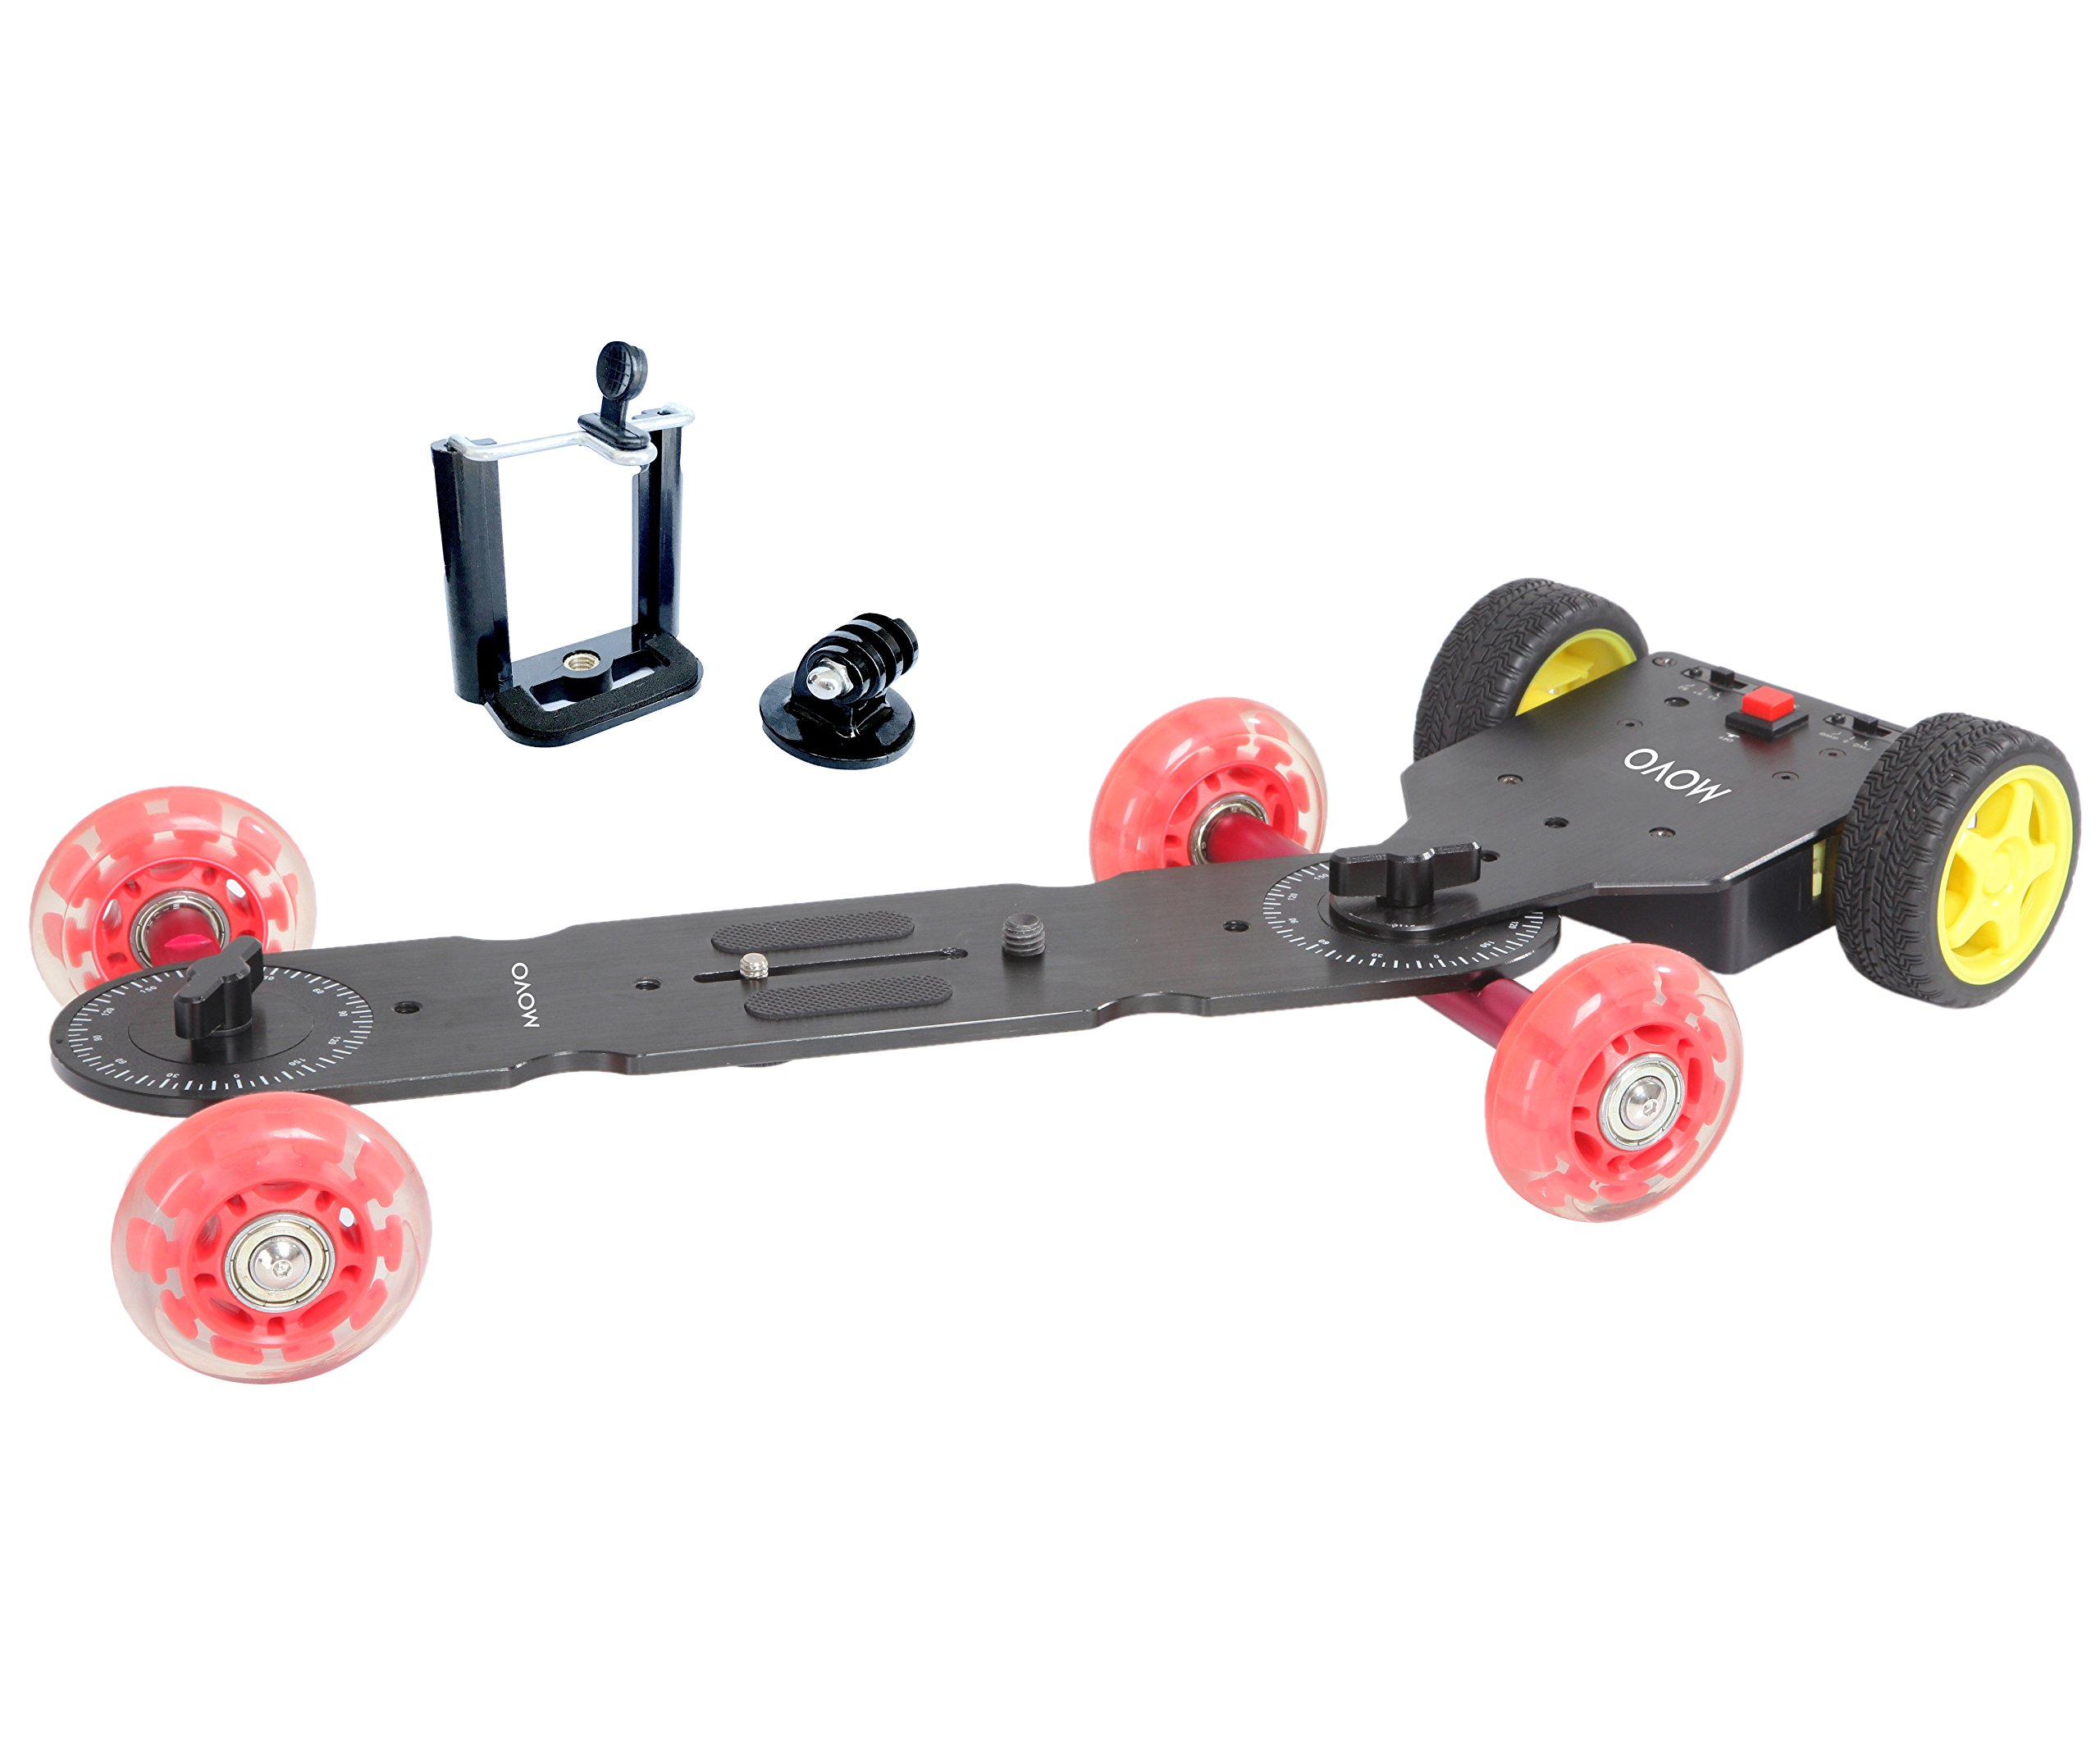 Movo Motorized Cine Skater Table Dolly Video Track Glider Bundle for DSLR Cameras, GoPro, iPhone, Android Smartphones (Long Version)